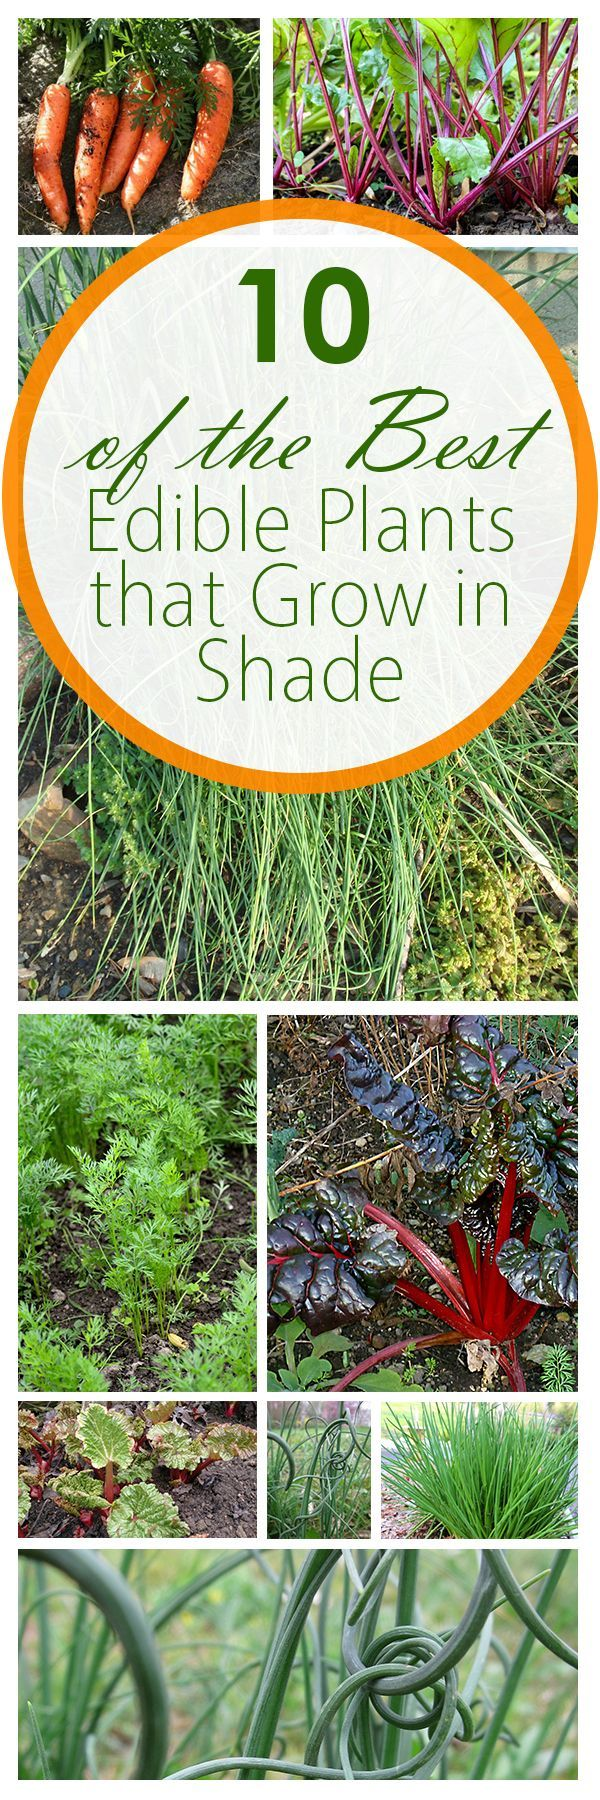 10 of the best edible plants that grow in shade